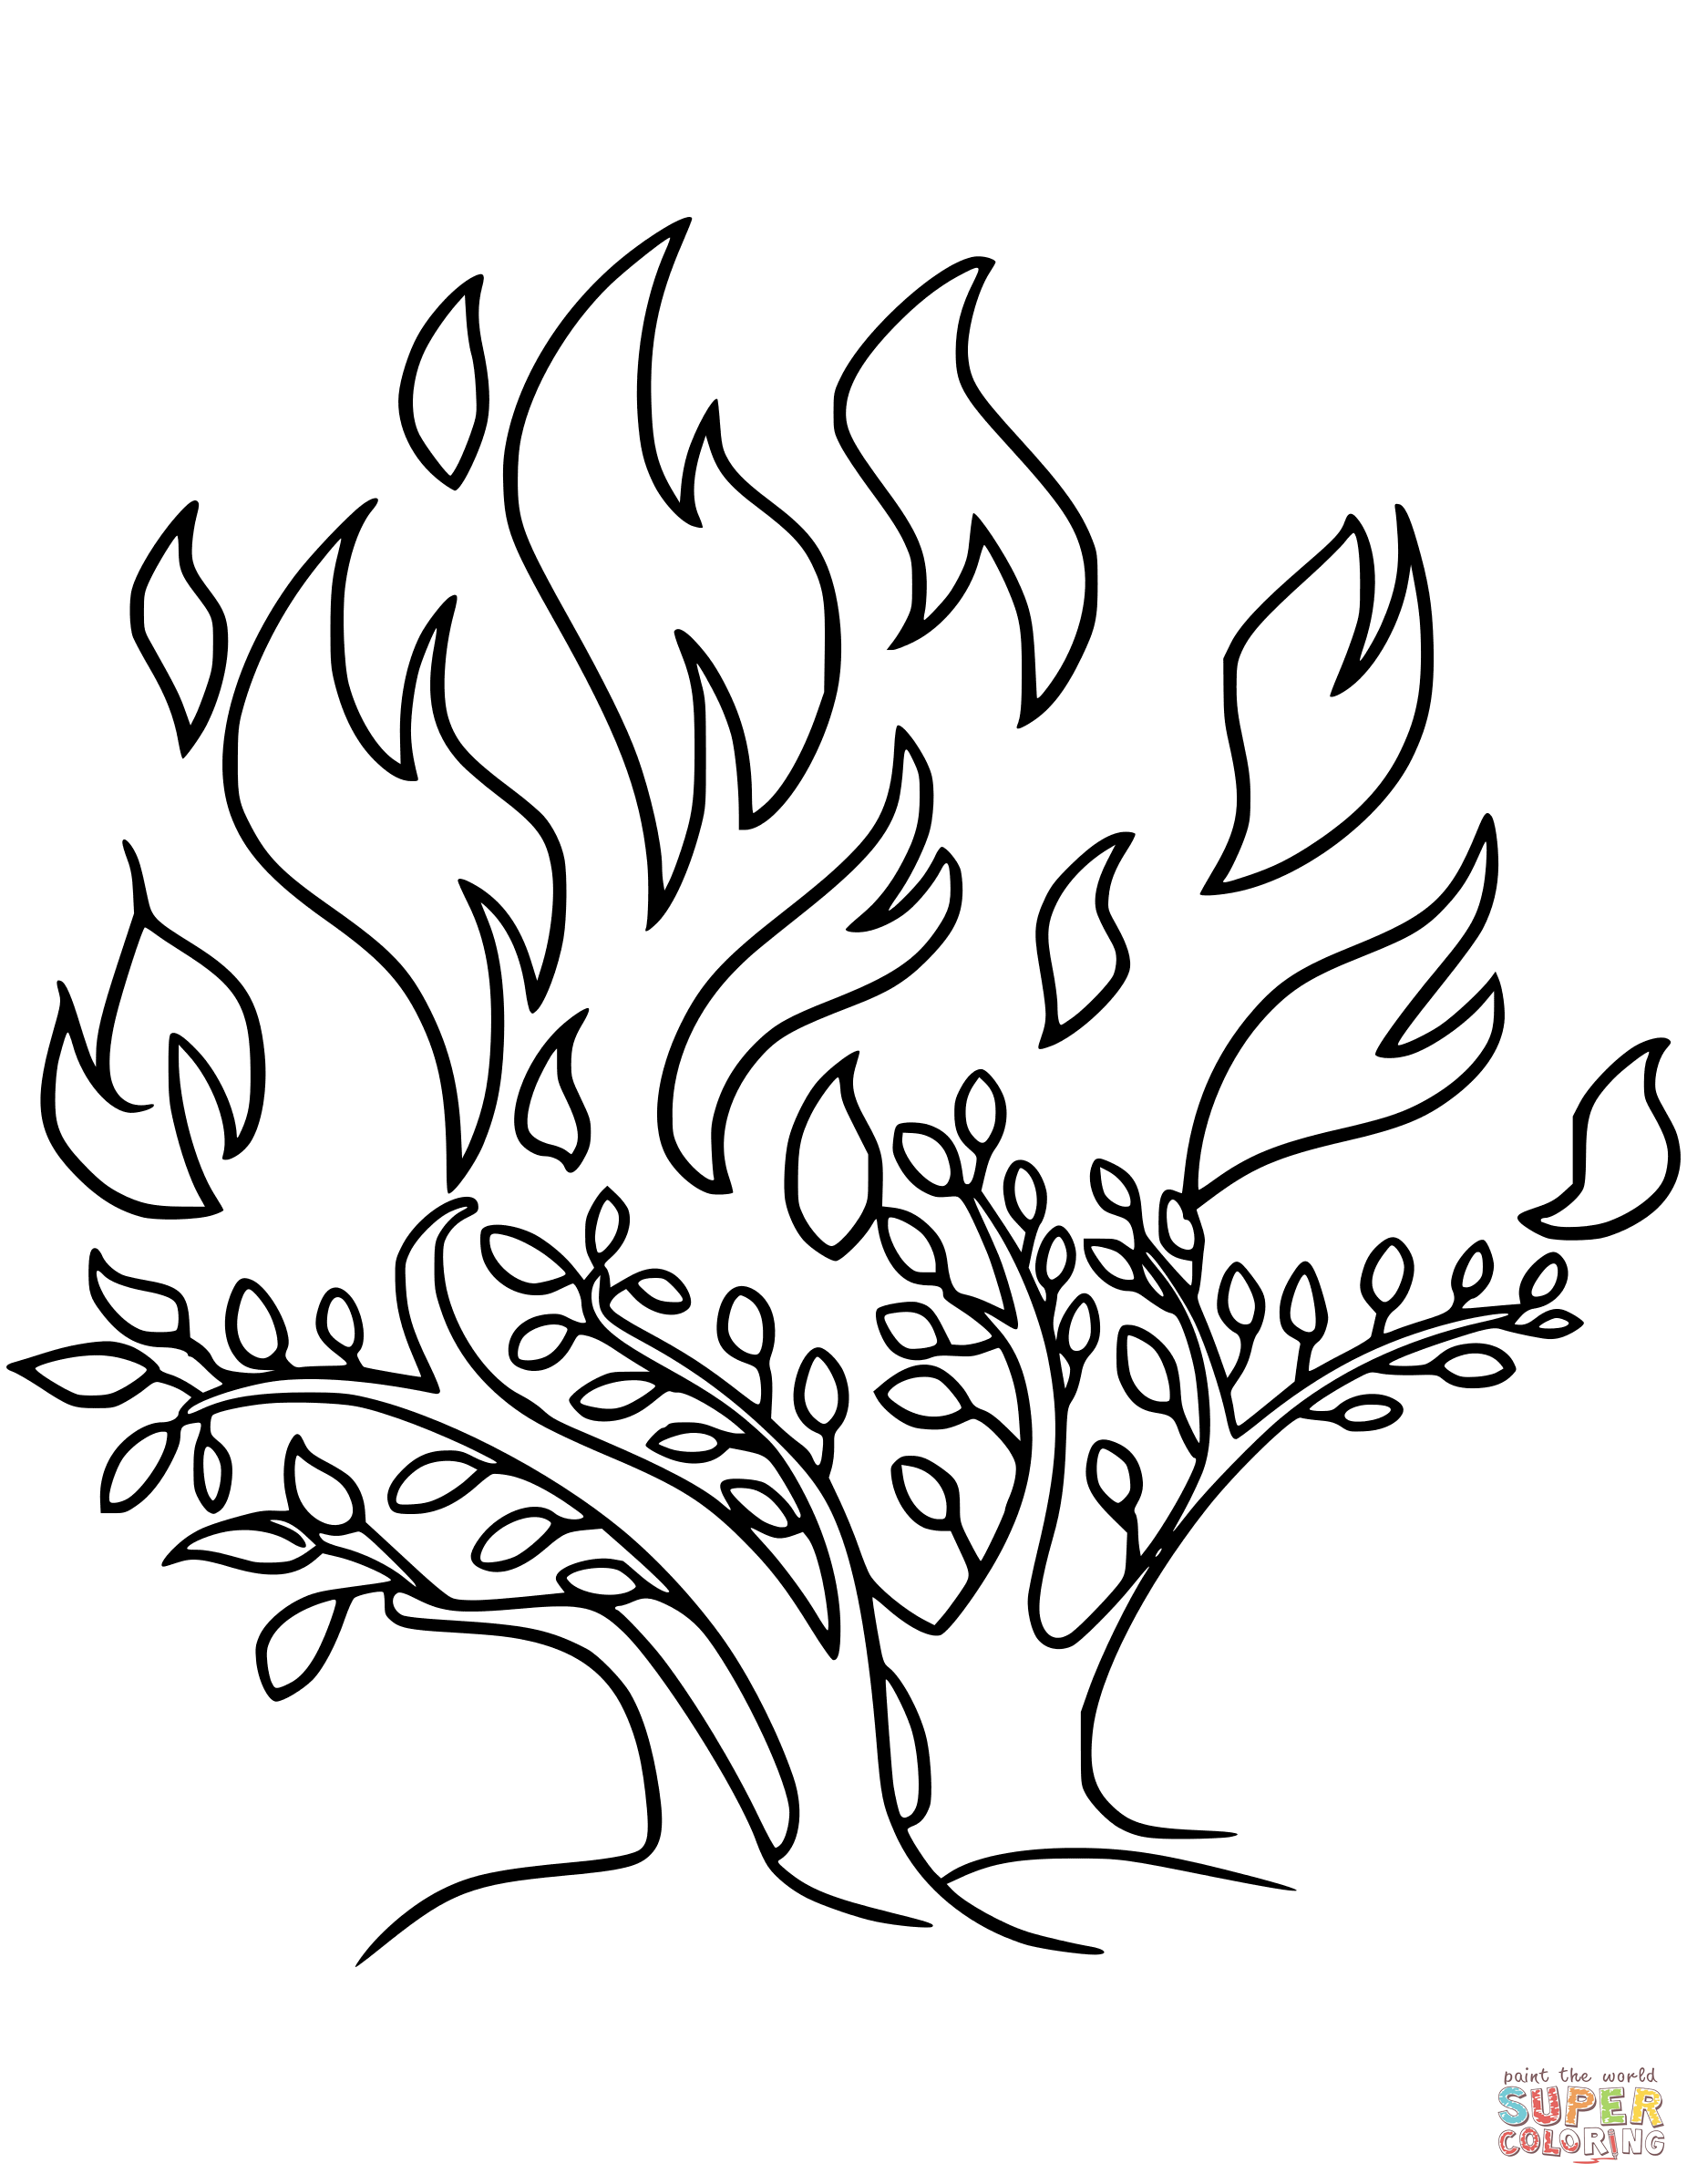 burning bush coloring page the incredible moses burning bush coloring page to coloring bush burning page